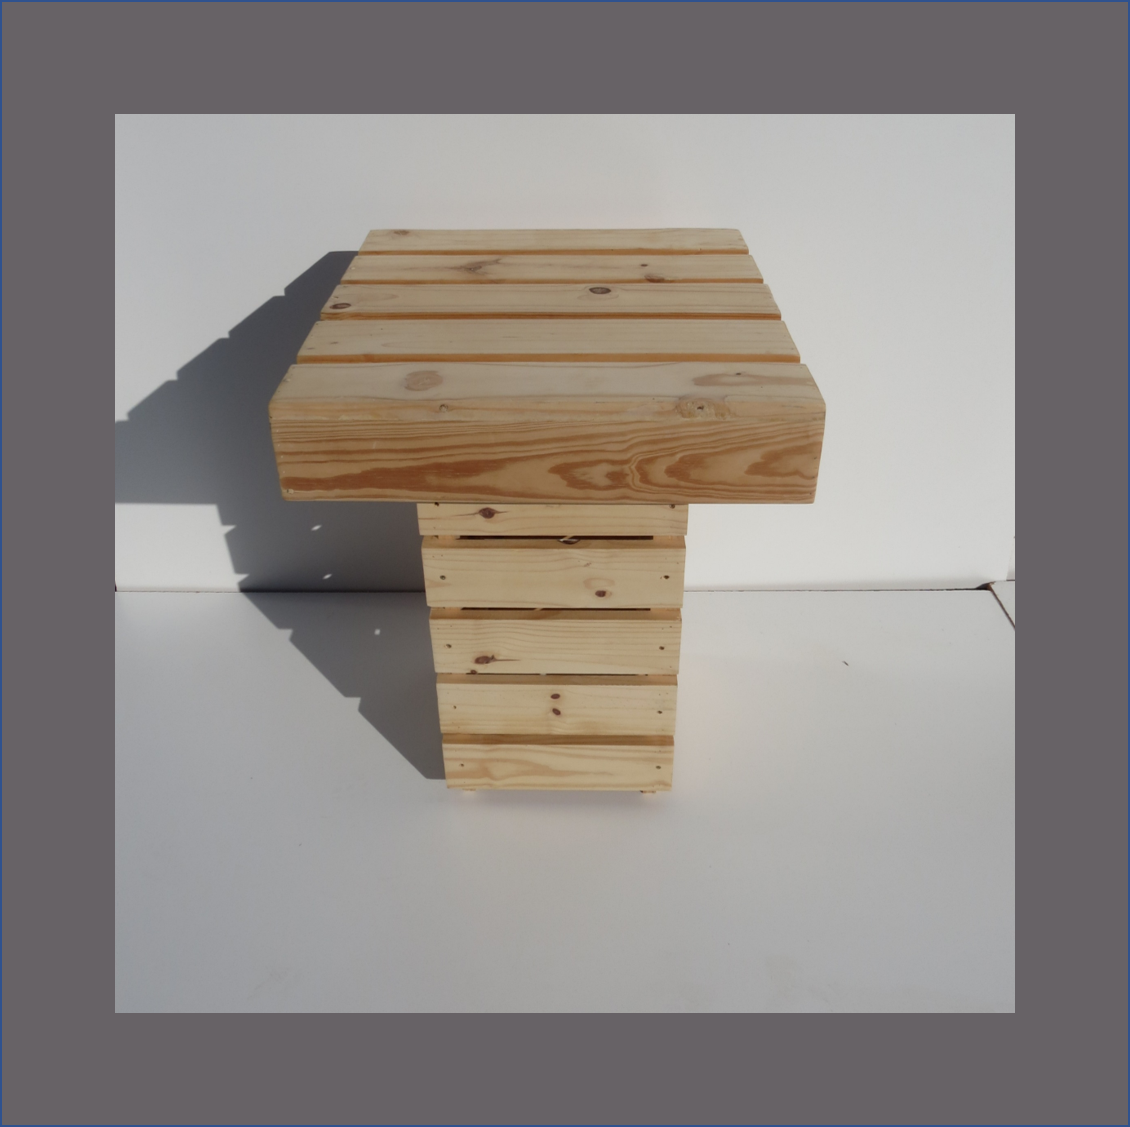 pine-slatted-side-table